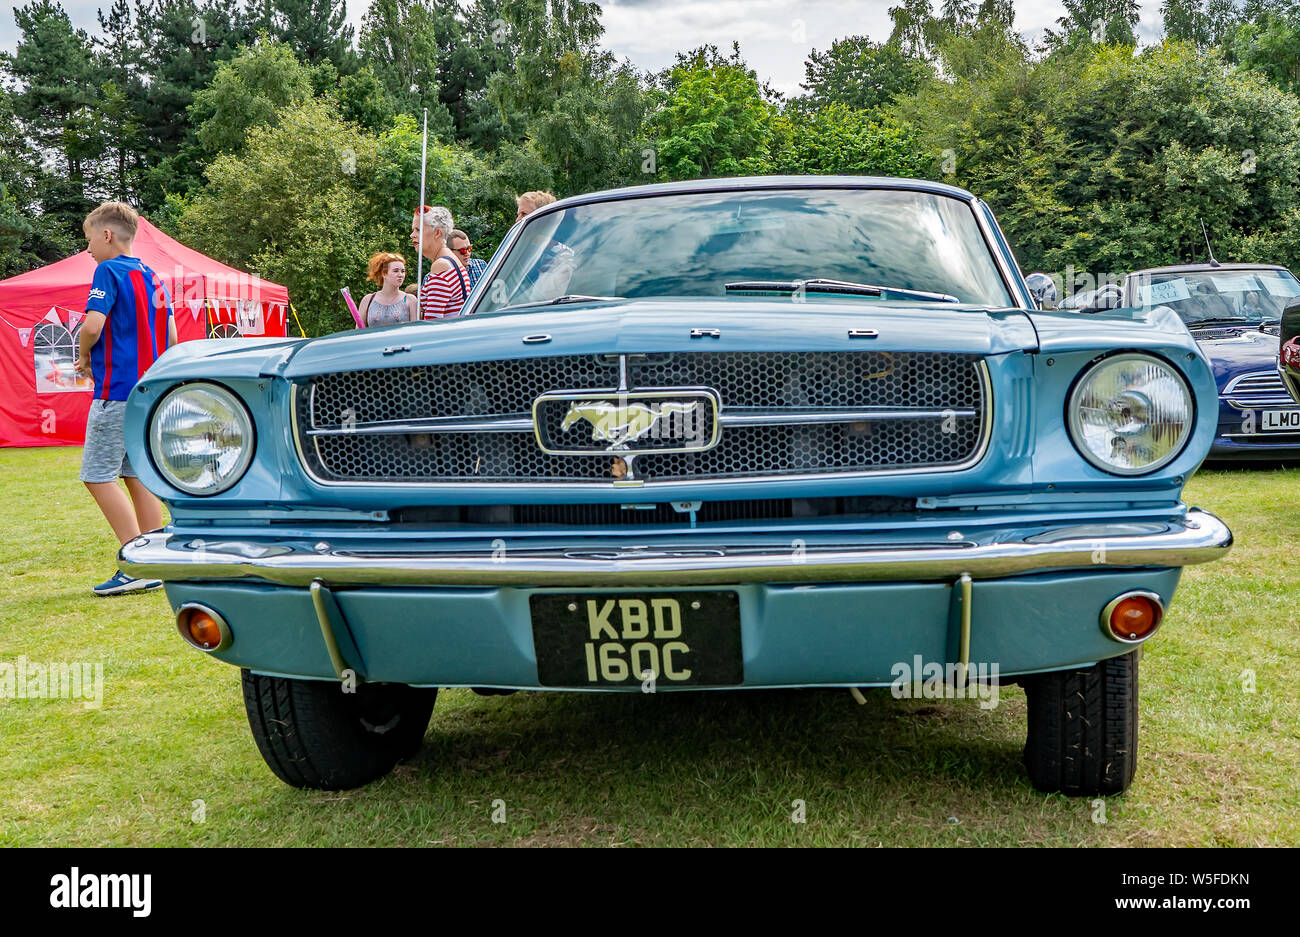 Front view of a blue vintage Ford Mustang on display at the annual classic car show in Wroxham, Norfolk, UK Stock Photo